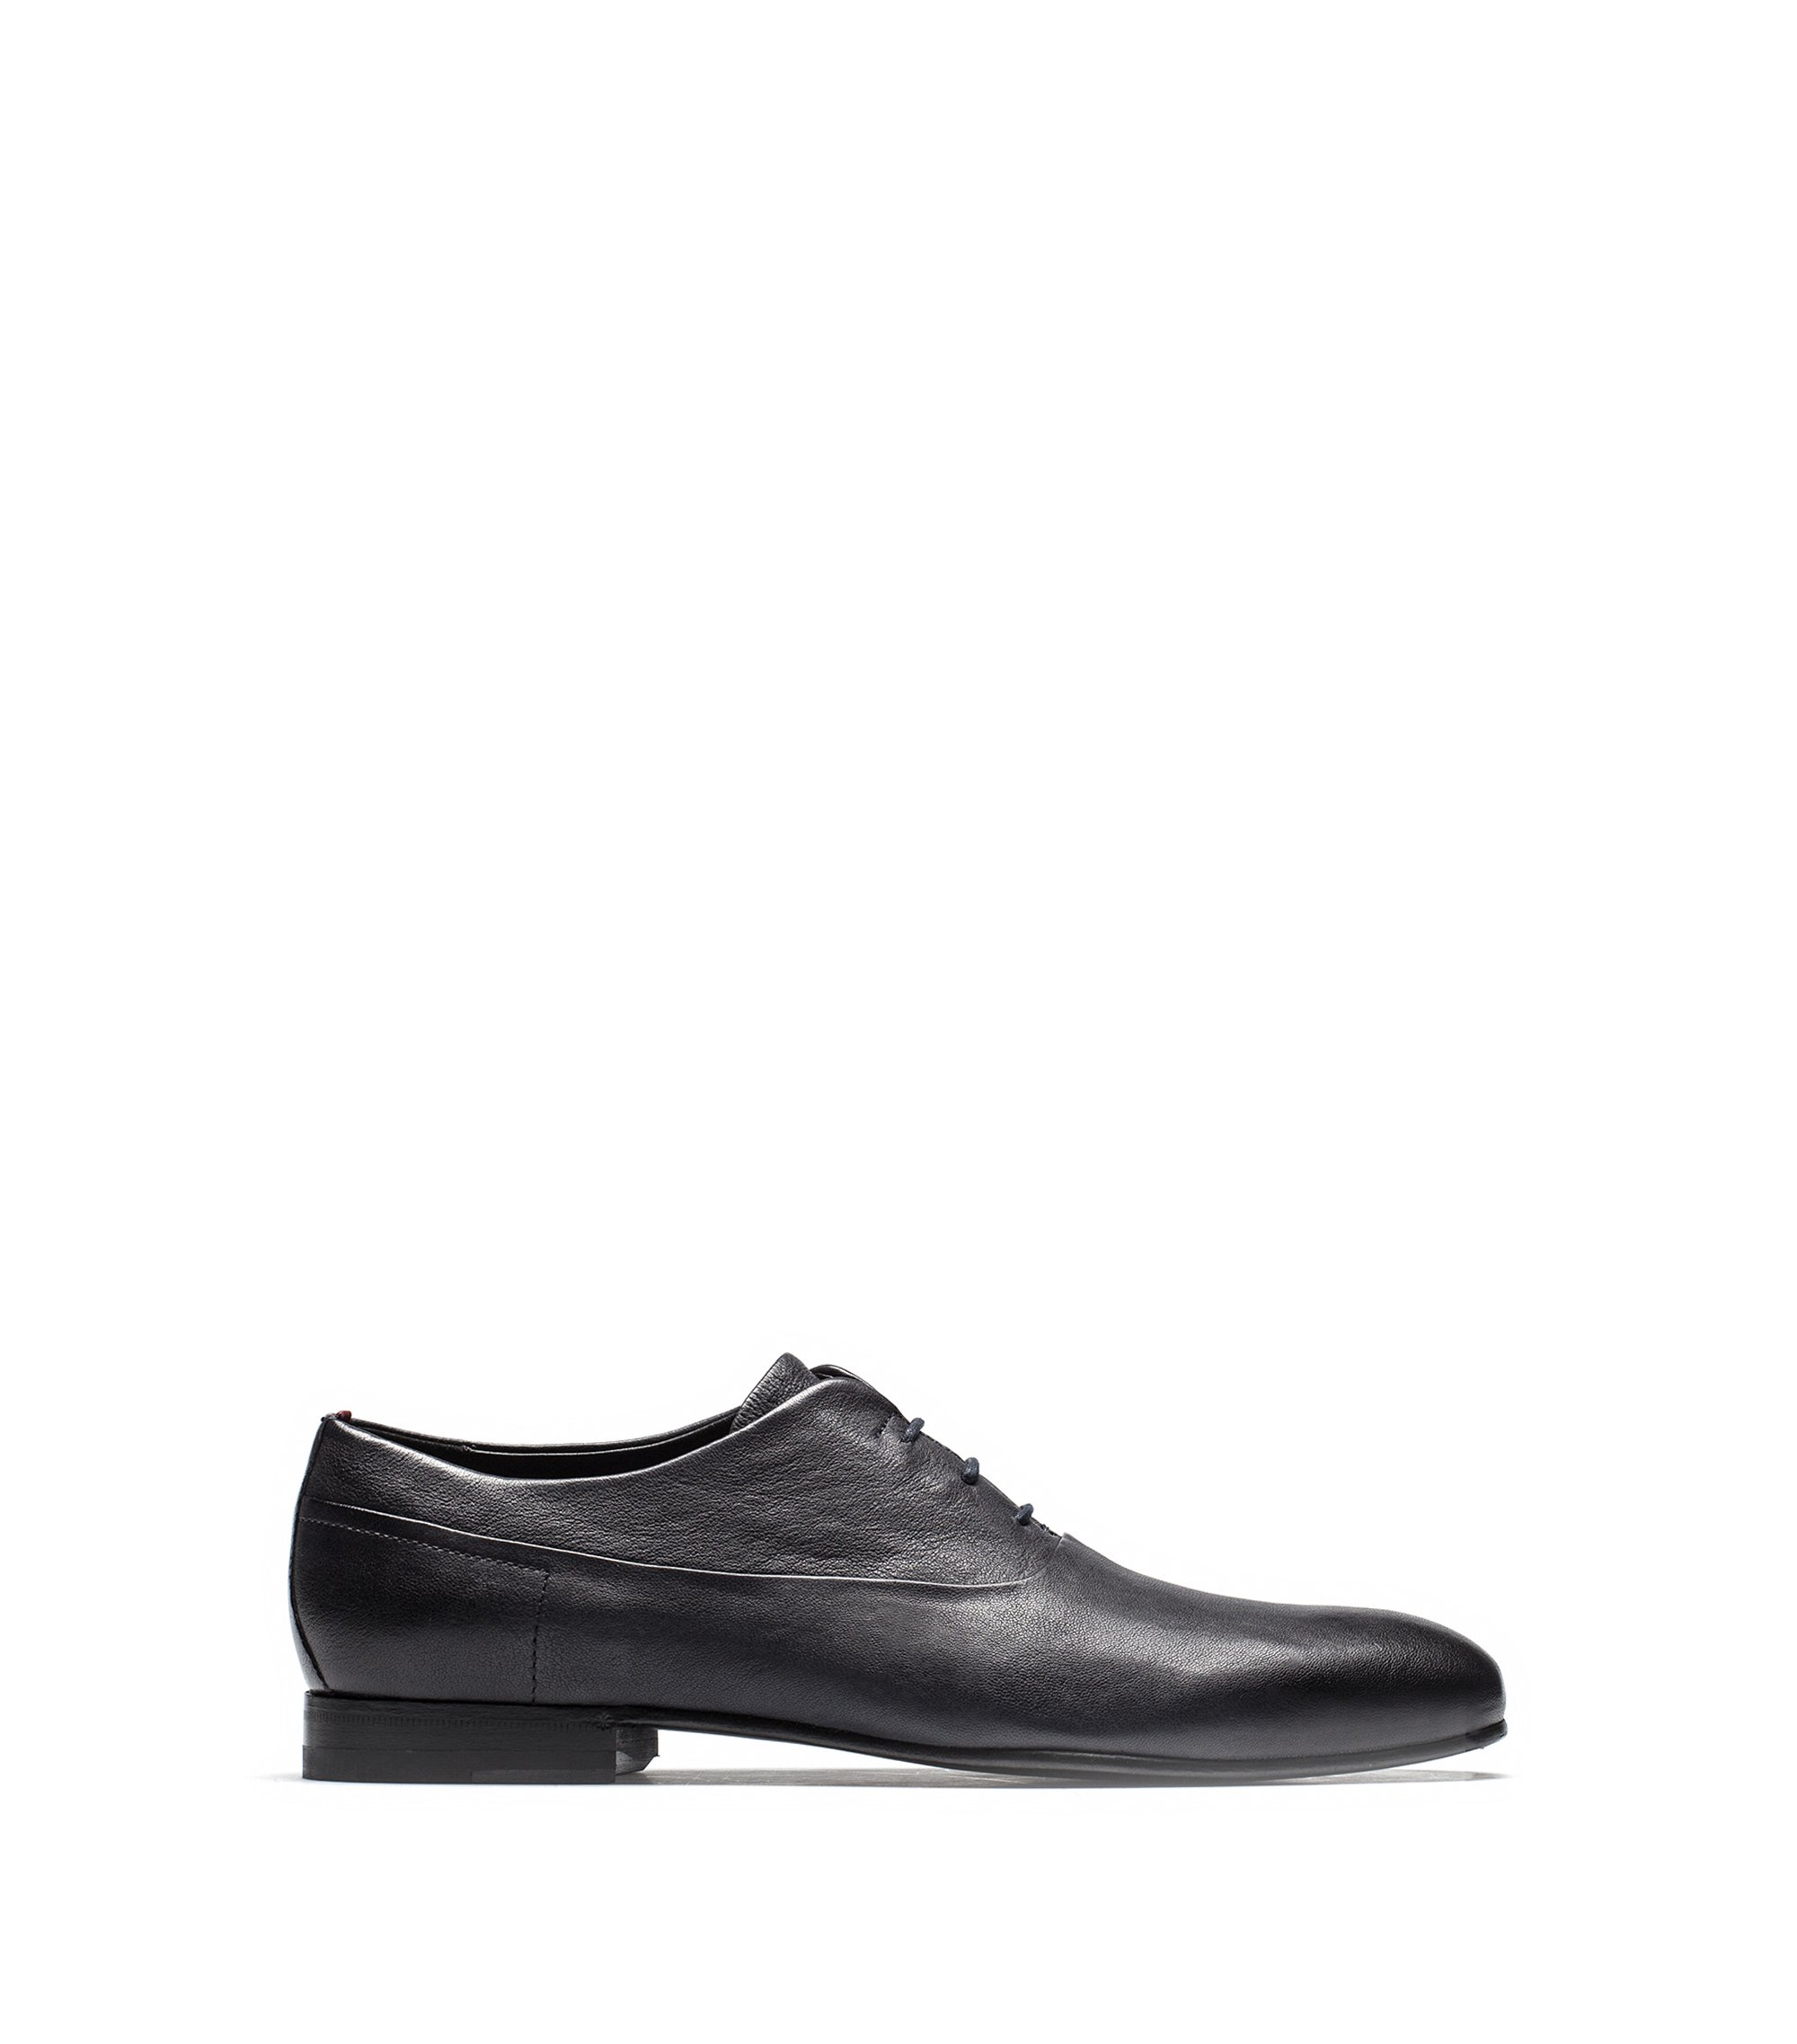 Leather Oxford Dress Shoes | Cordoba Oxfr Gr, Dark Blue